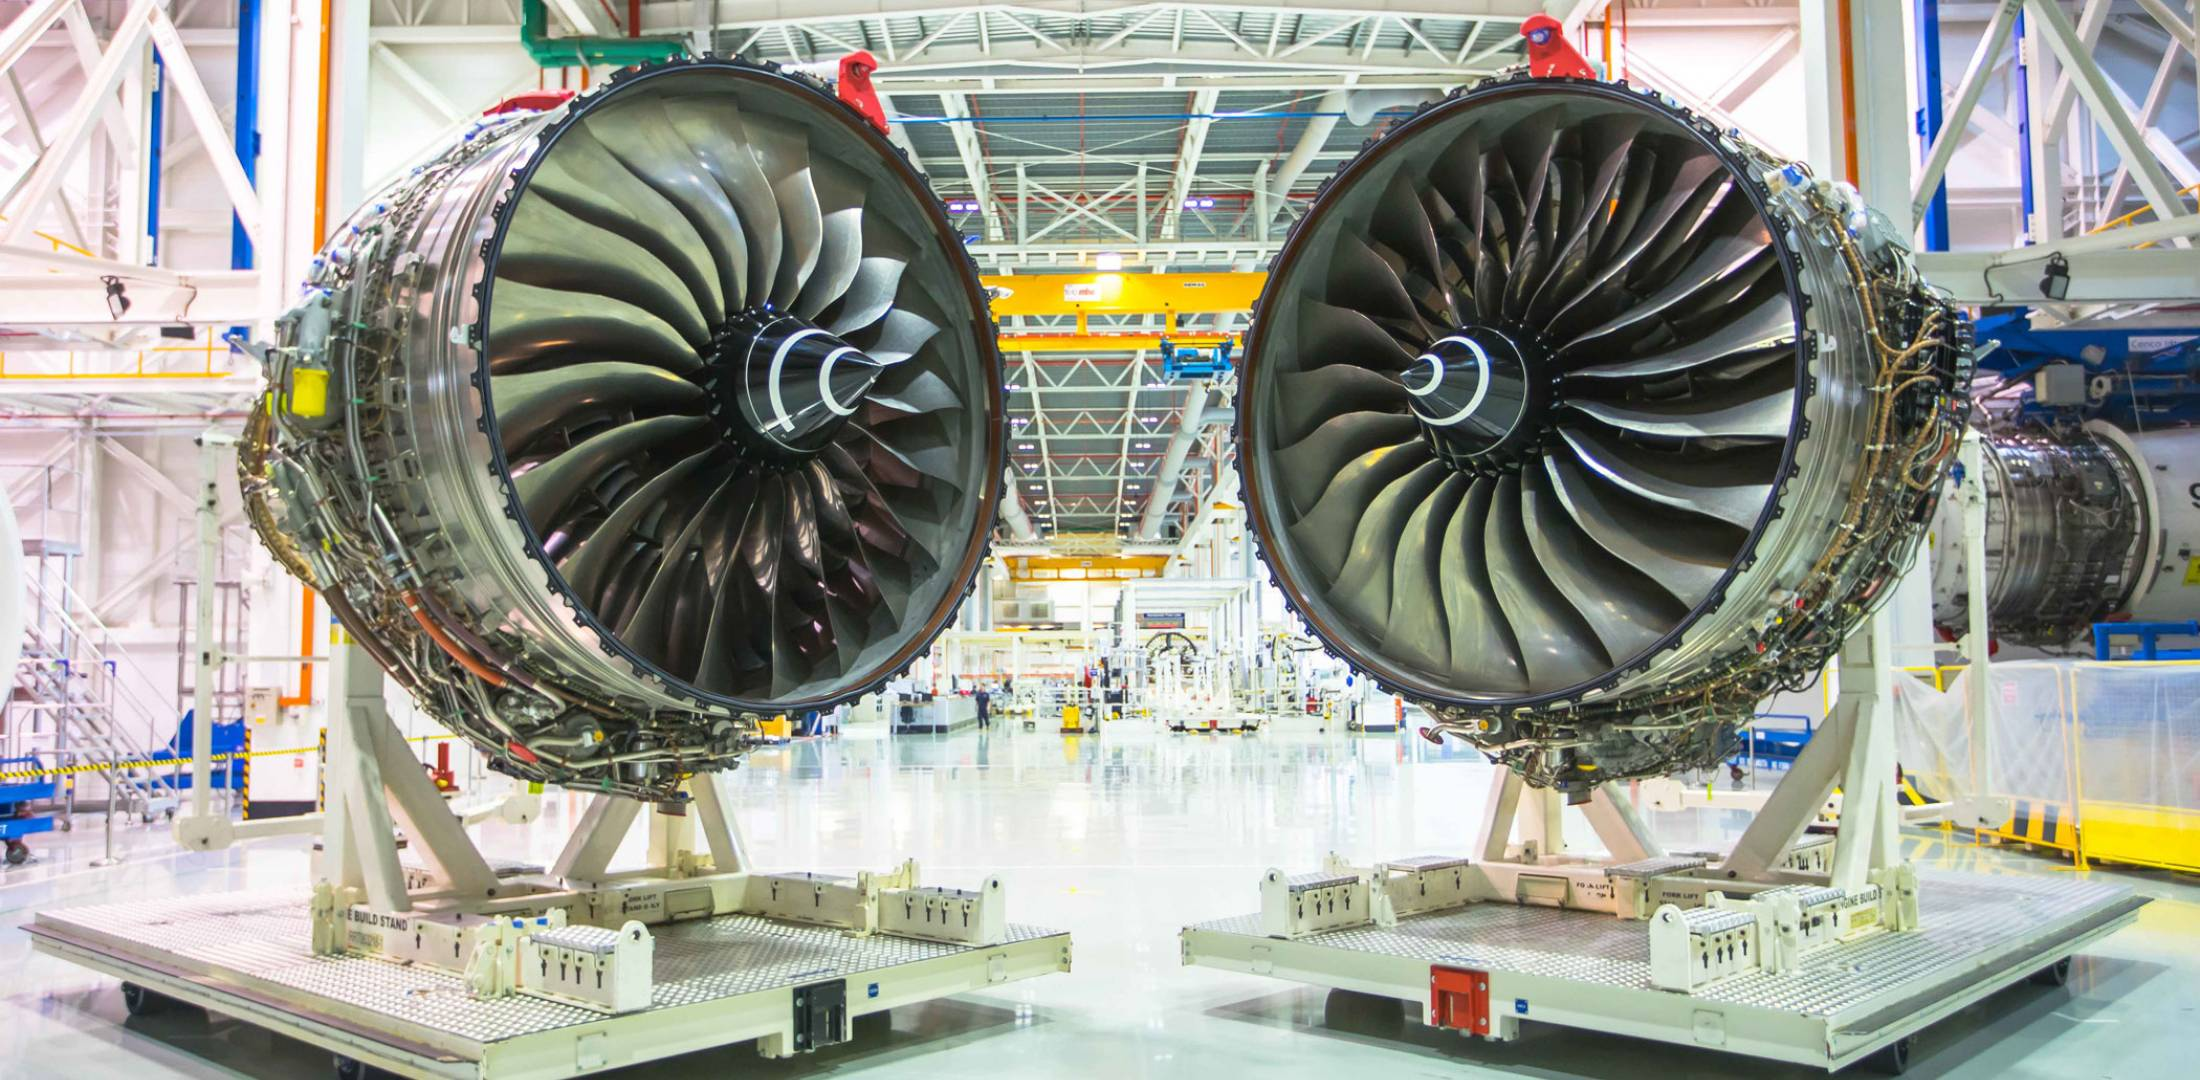 The Rolls-Royce test-and-assembly facility in Singapore